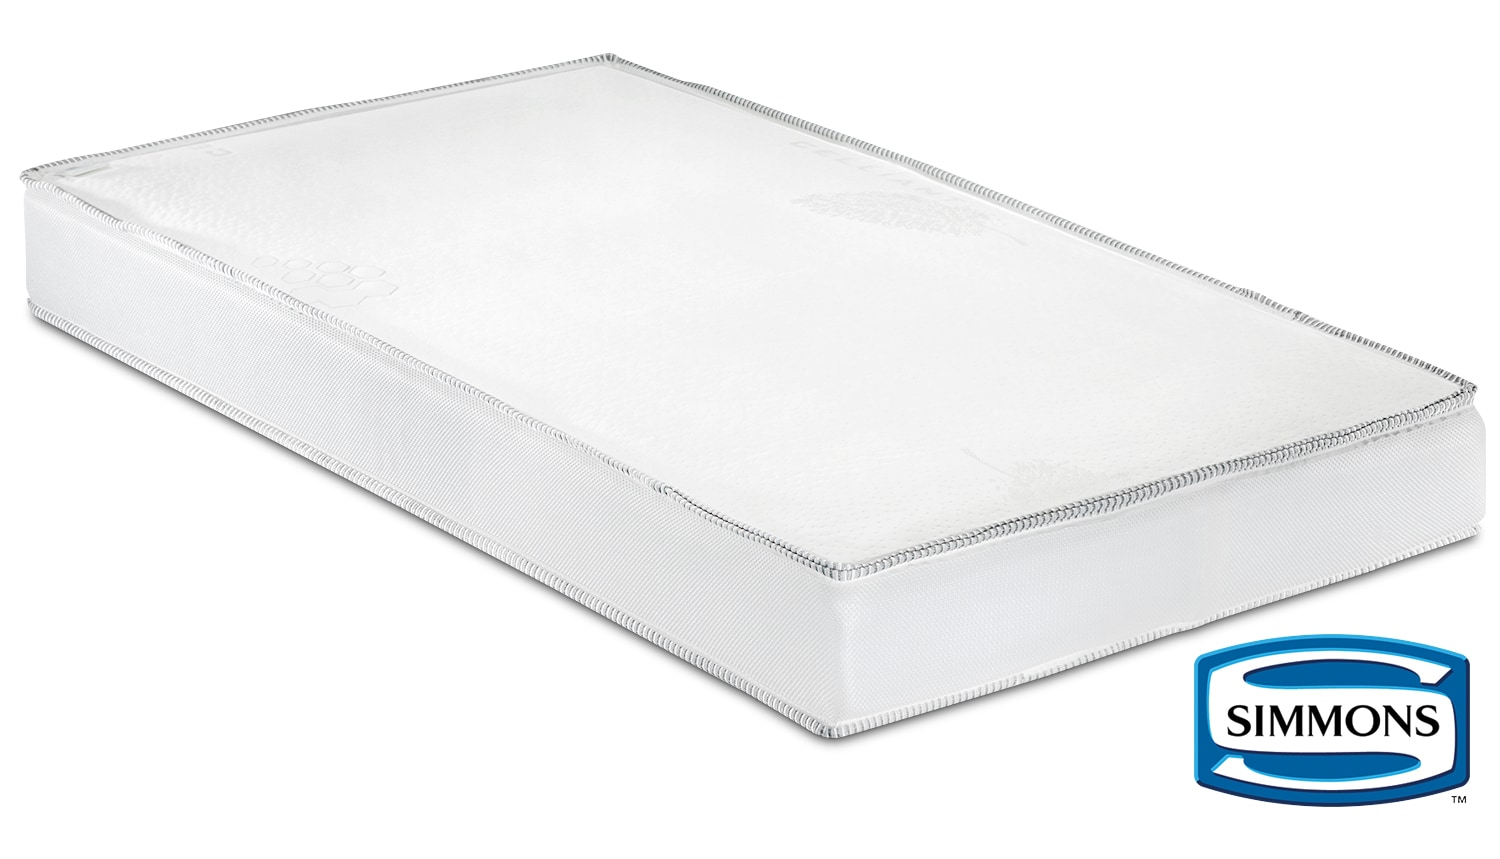 Snugglebunny Crib Mattress